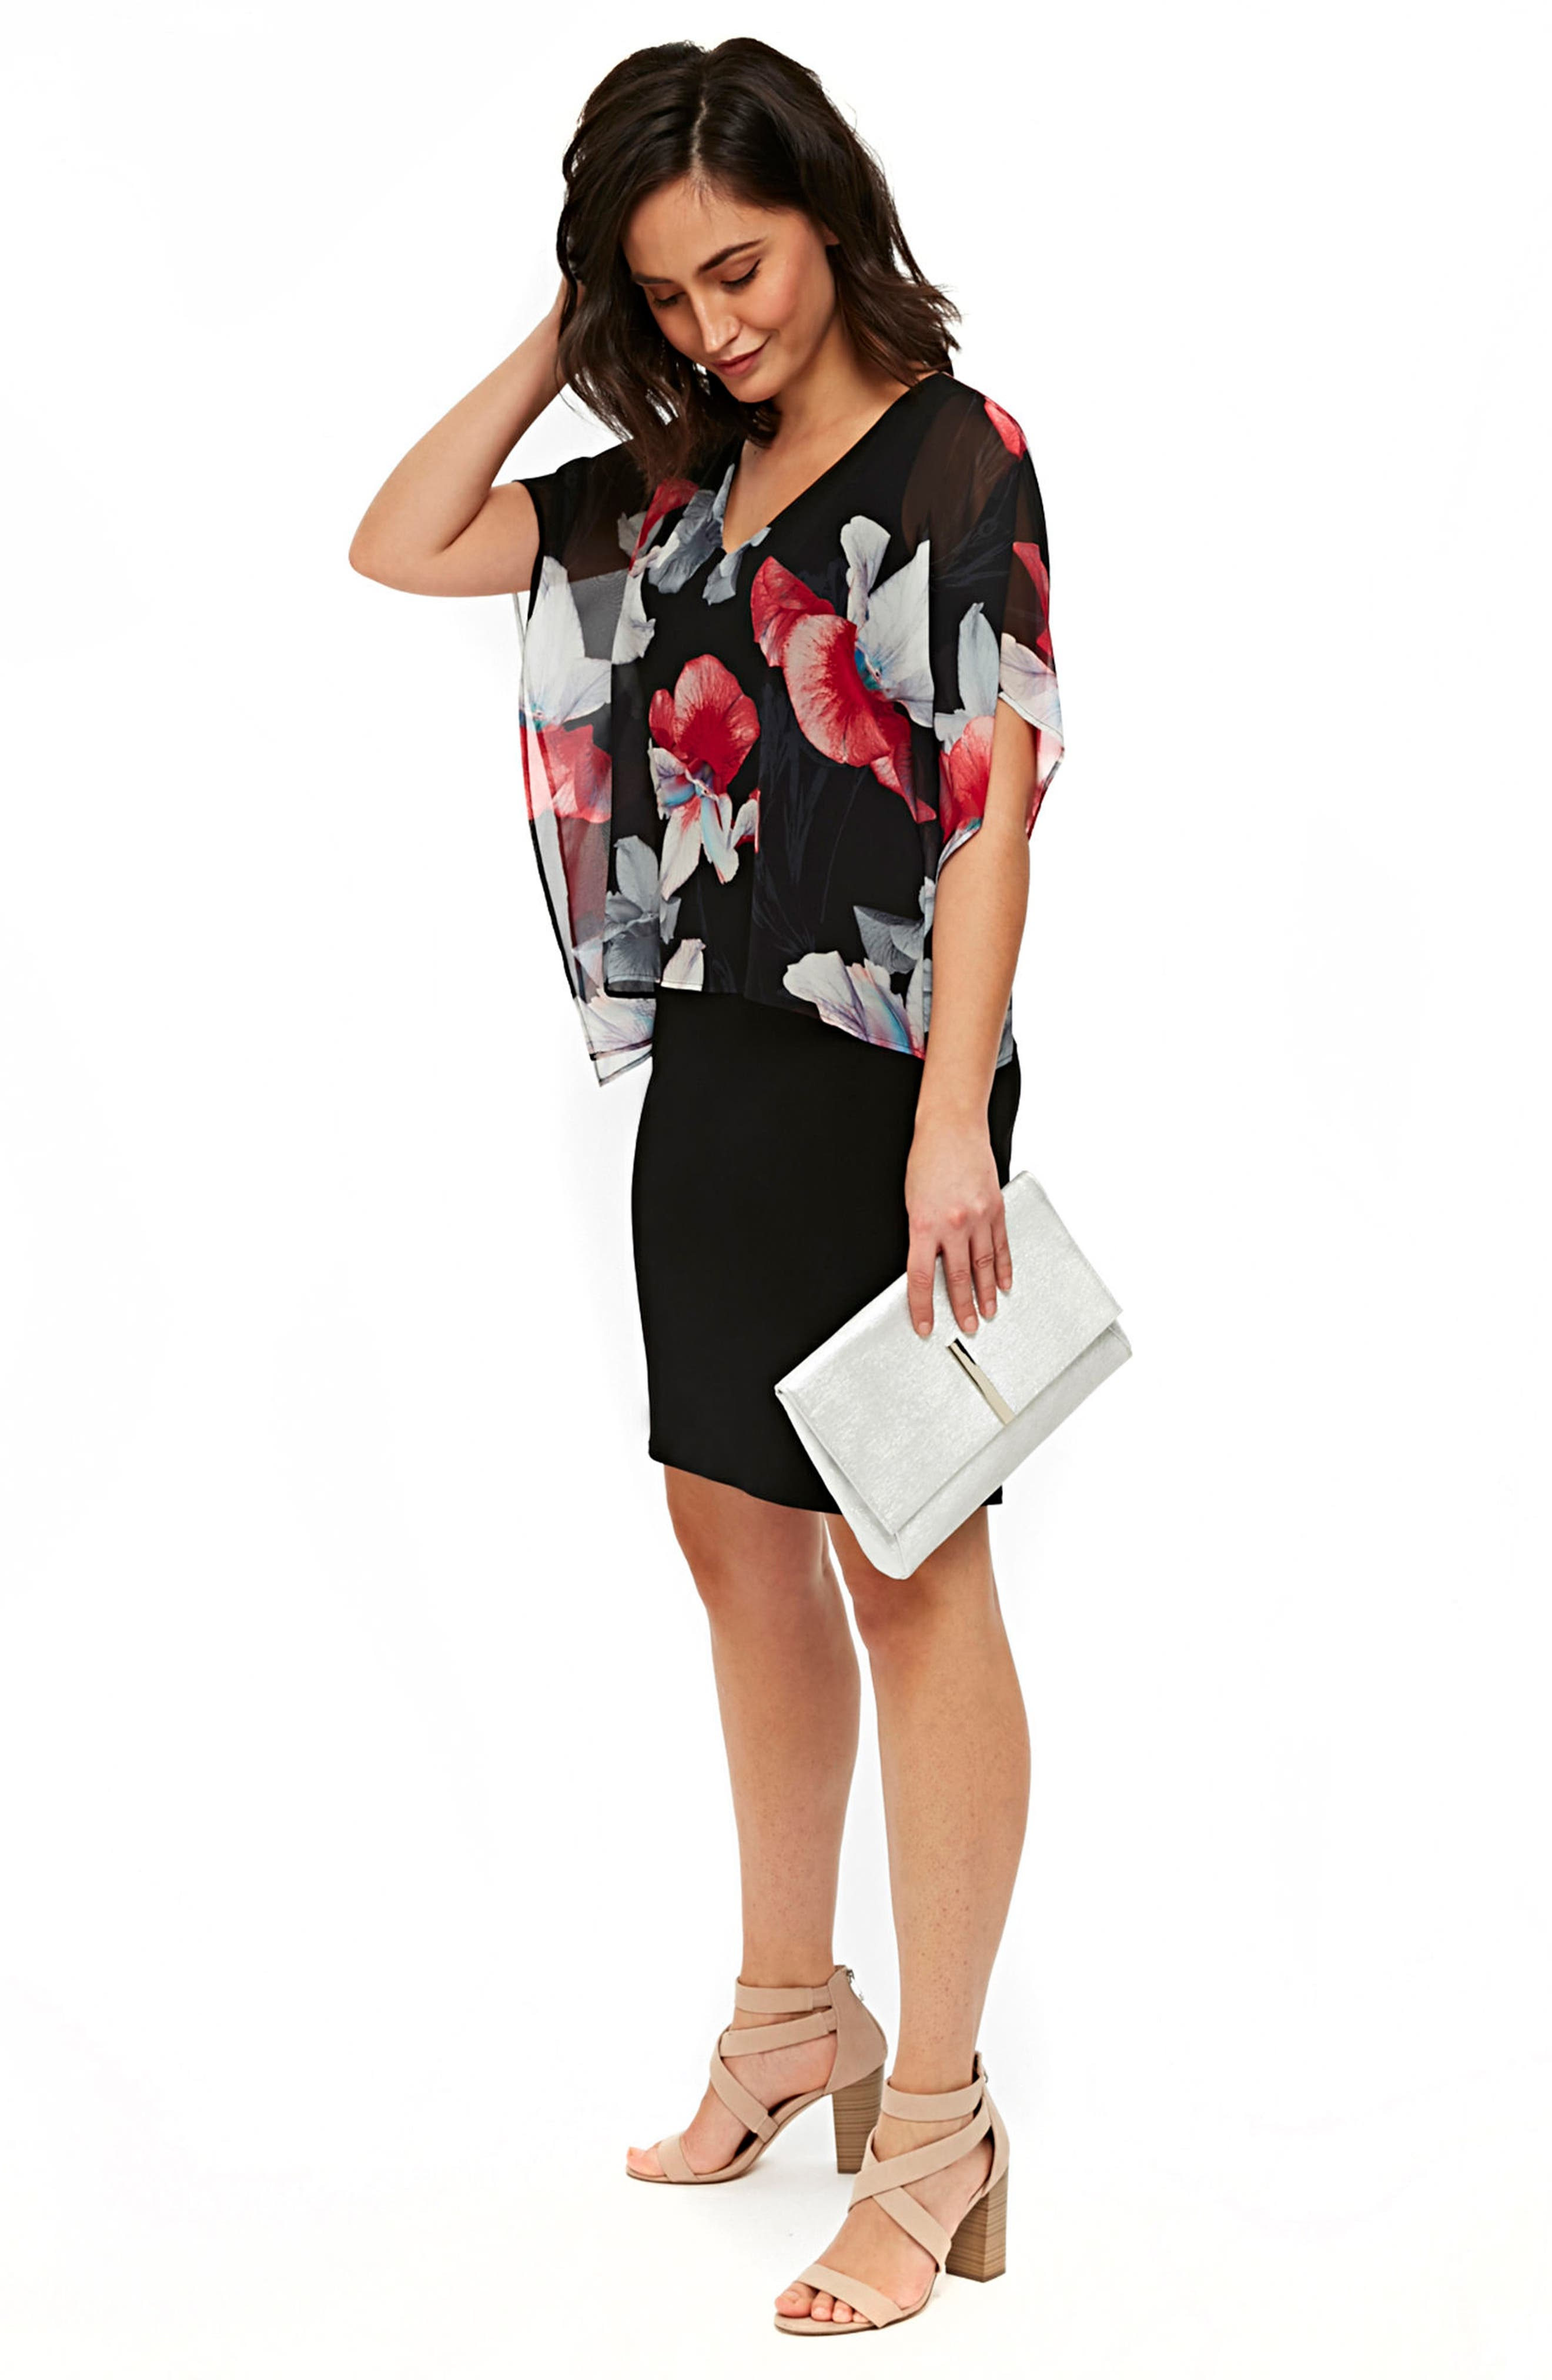 Orchid Overlay Dress by Wallis